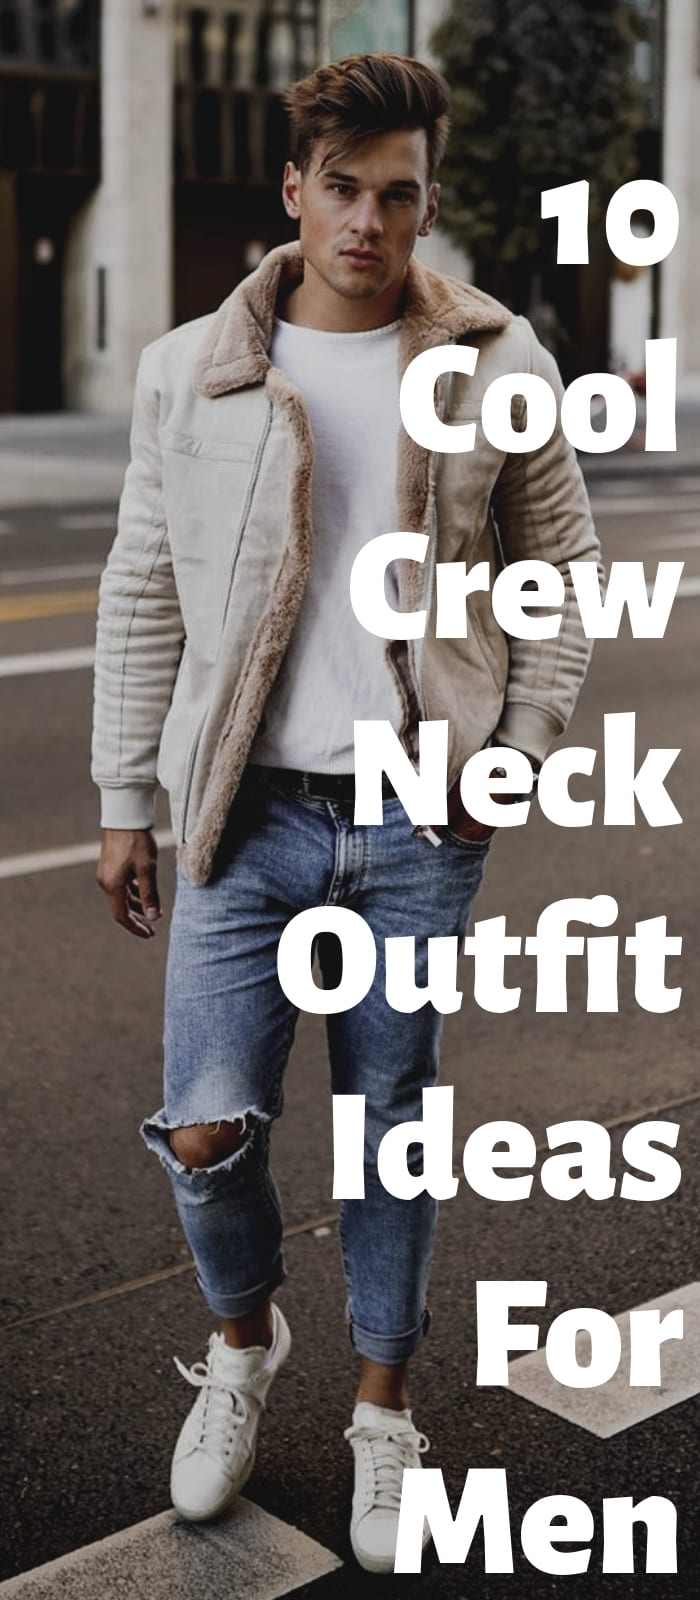 10-Cool-Crew-Neck-Outfit-Ideas-For-Men.